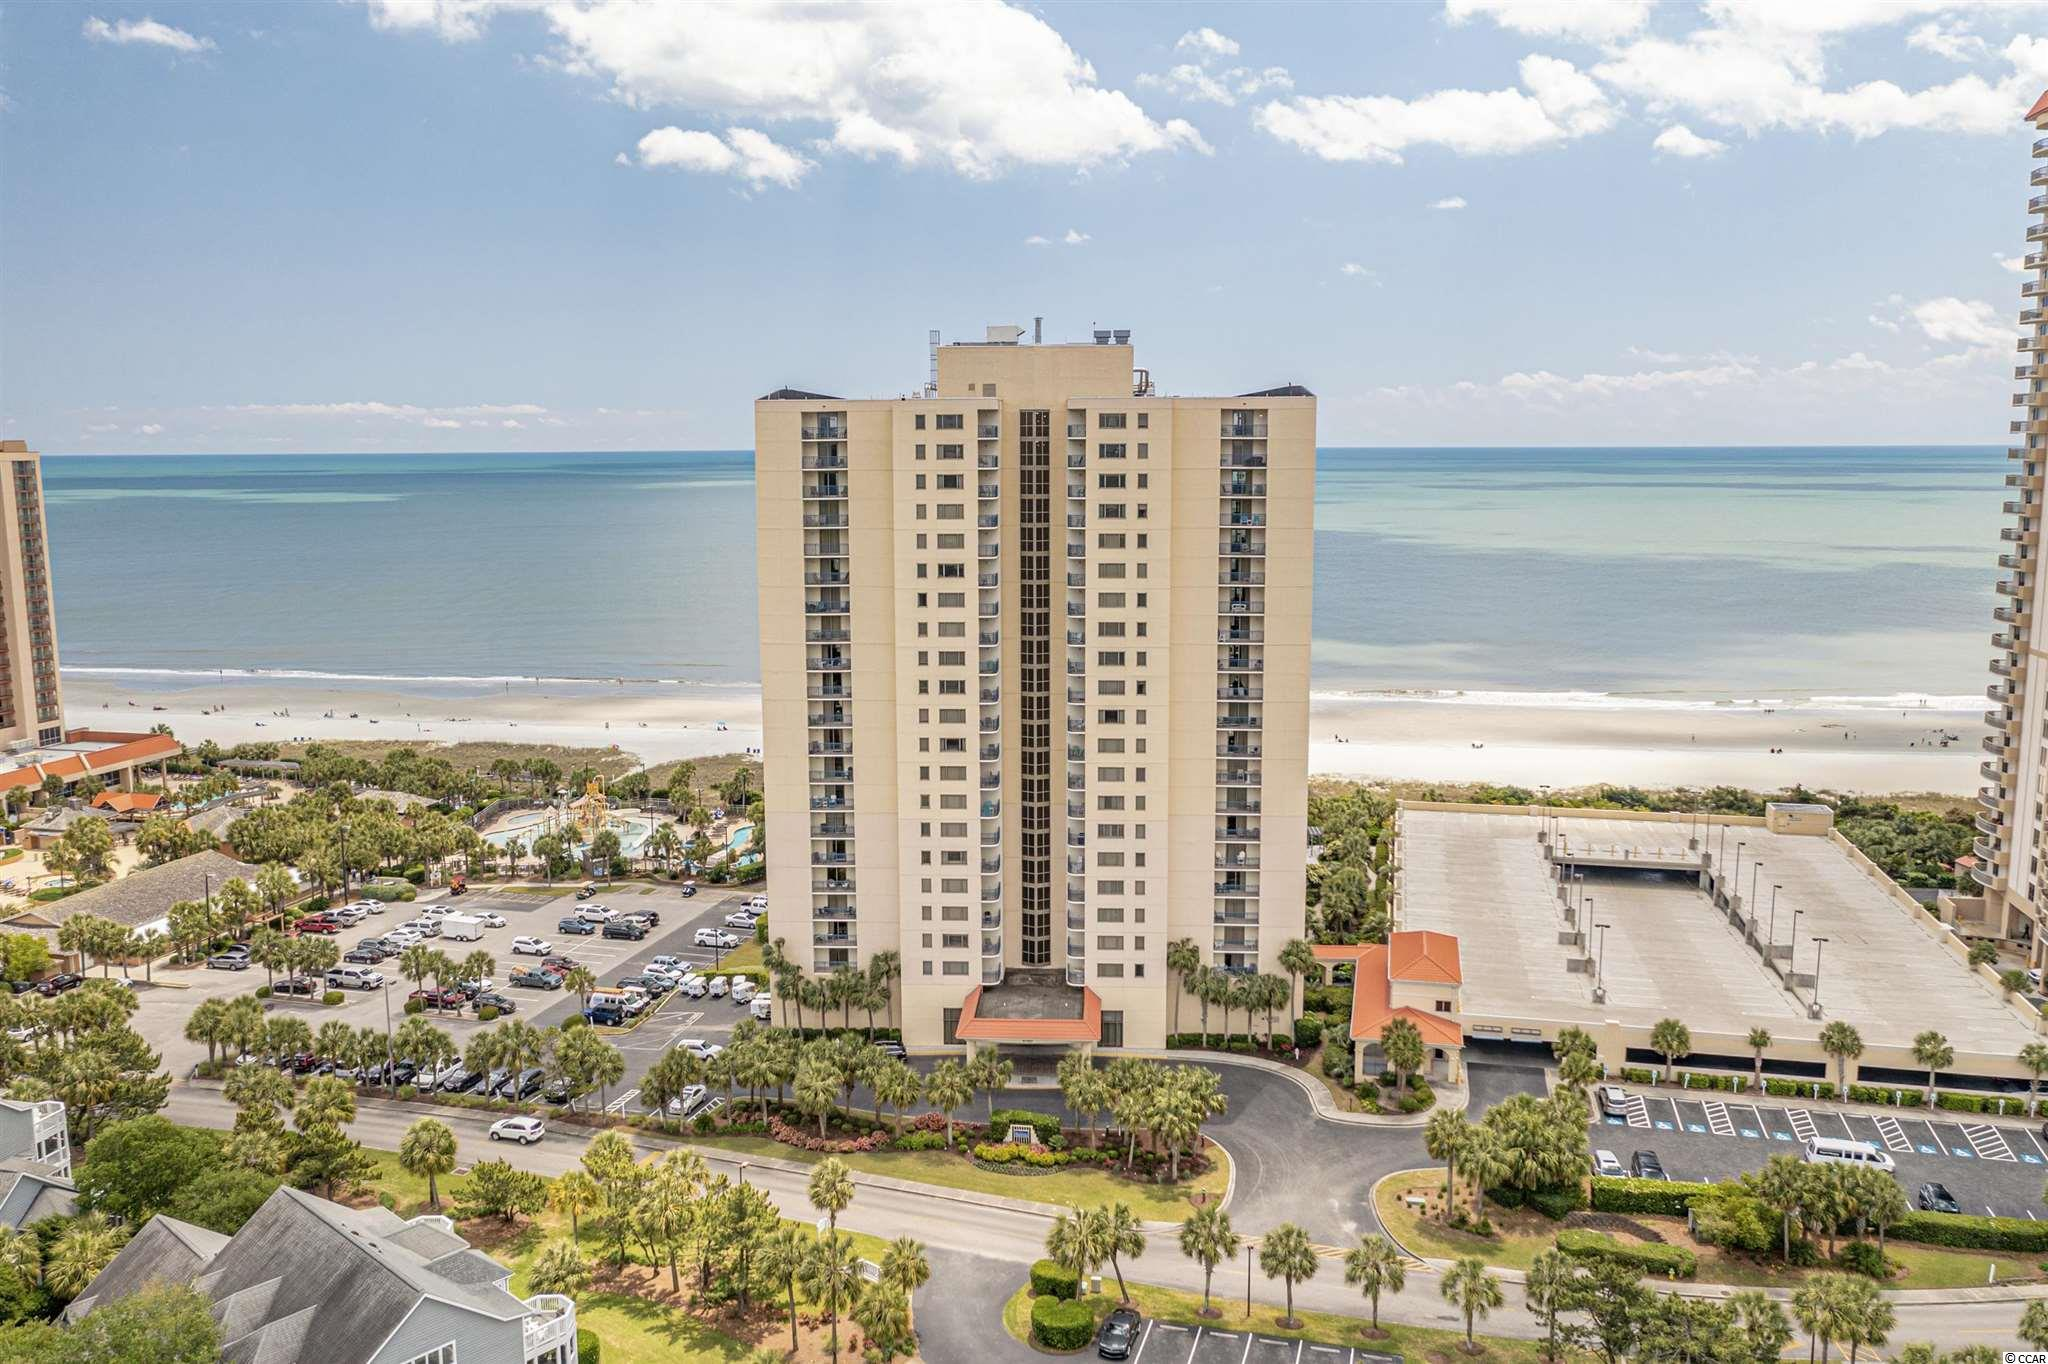 The Brighton is an oceanfront resort in beautiful Kingston Plantation. This 2 bedroom 2 full bath fully furnished condo has large bedrooms with a 200 sq ft. south side ocean view balcony.   This condo comes fully furnished and includes full size washer/dryer. The master suite bath has a newly tiled walk in shower and jacuzzi tub. Master Bedroom has  balcony access and gorgeous ocean views. Some recent updates include: new elevator, building and balconies have been resurfaced and painted, renovated lobby, and pool area. New HVAC 2020 and New 100 Gal Hot Water Heater 2019.  Kitchen has granite countertops along with newer appliances. There are ocean views from just about every room! Kingston Plantation is a 145 acre oceanfront resort with 24hr gated security and has numerous amenities including ocean front water park, tennis courts, new spa and fitness center, tennis courts, (golf cart friendly) to mention just a few.  All this is located on 1/2 mile of ocean front beach.